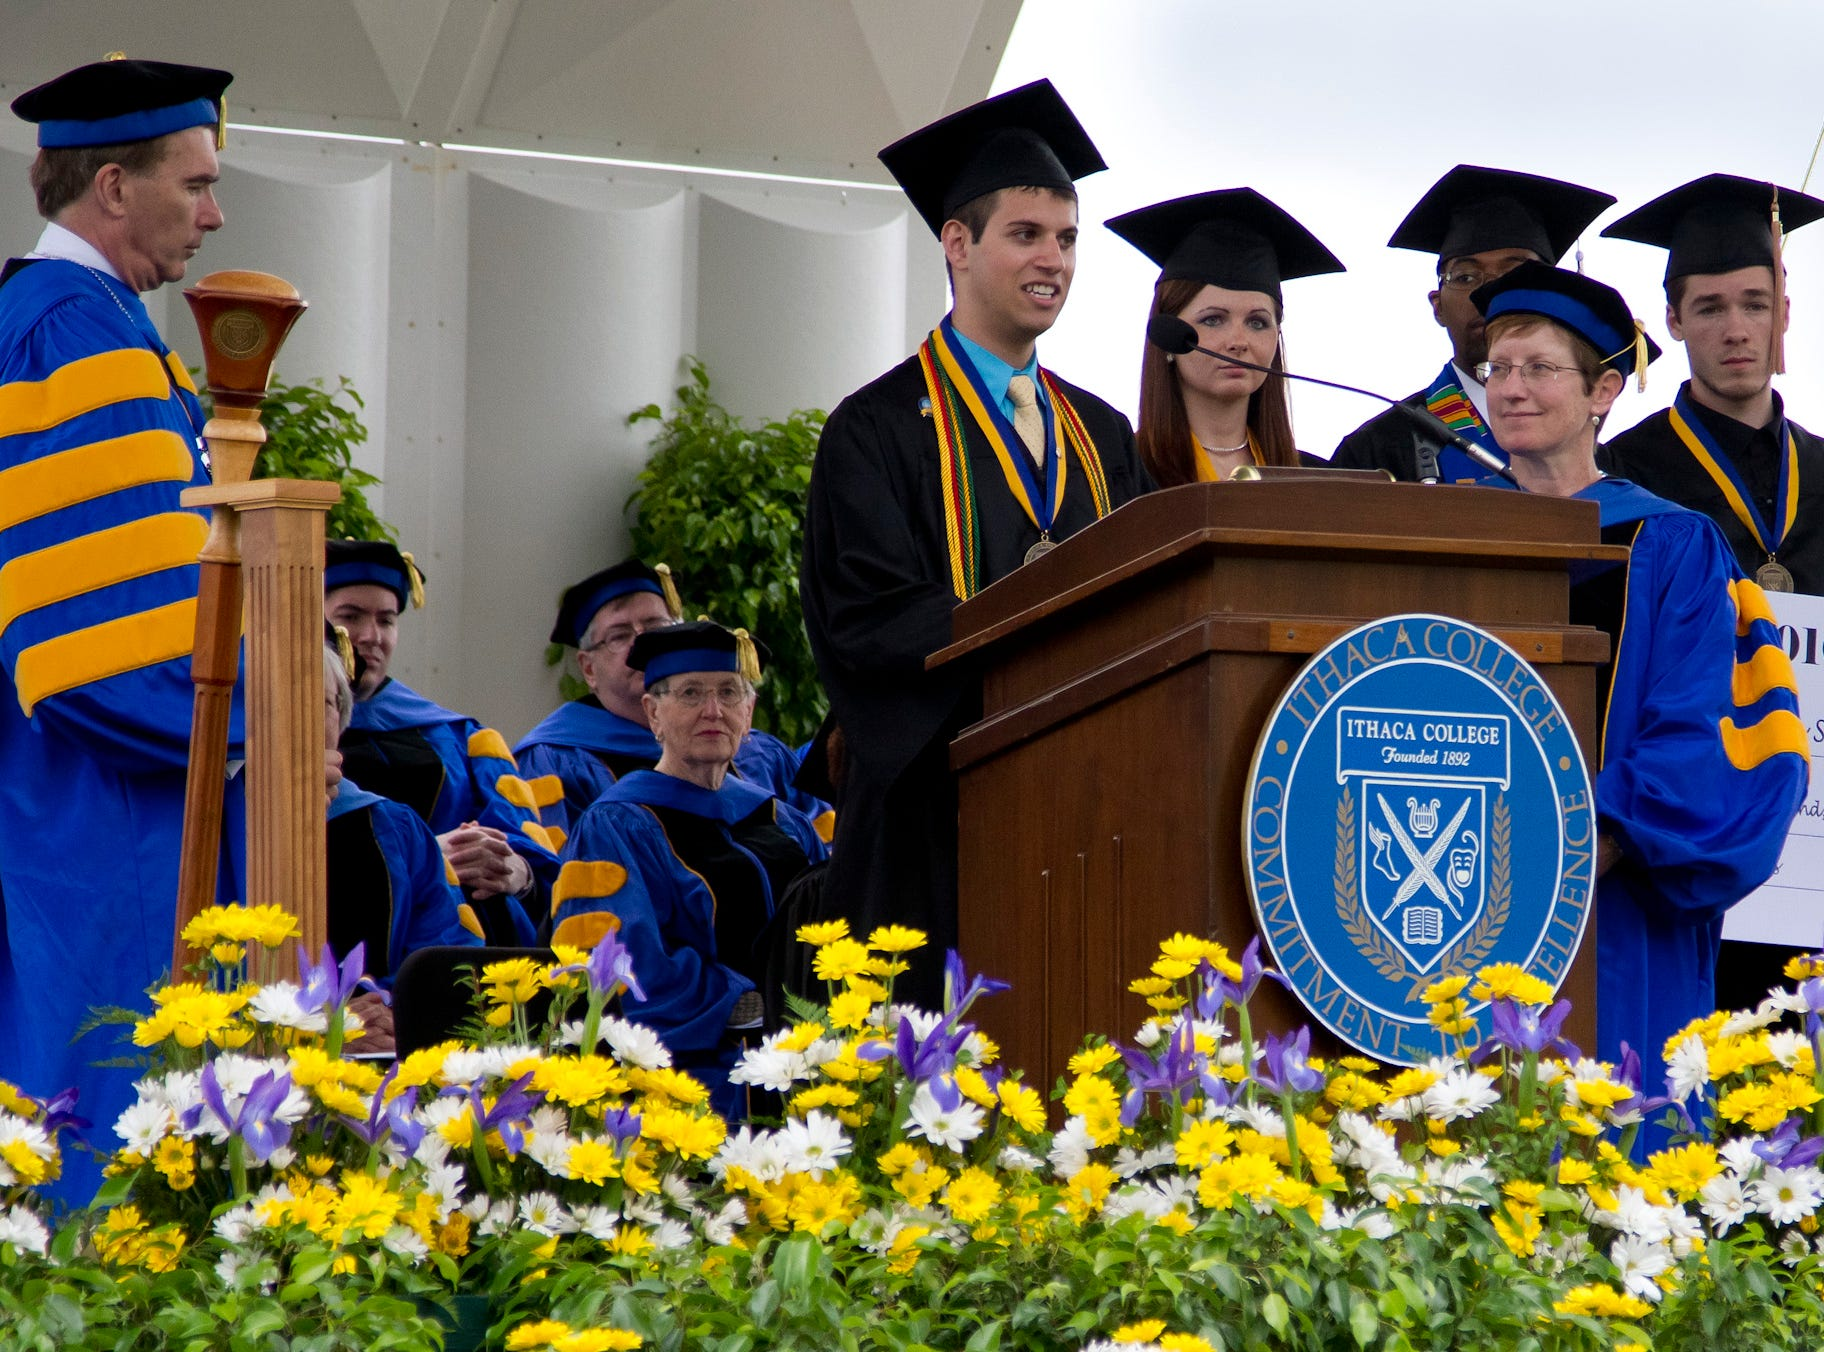 2010: The Senior Class Gift of $79,414.00 is presented at the Ithaca College Commencement Ceremony Sunday in Butterfield Stadium.